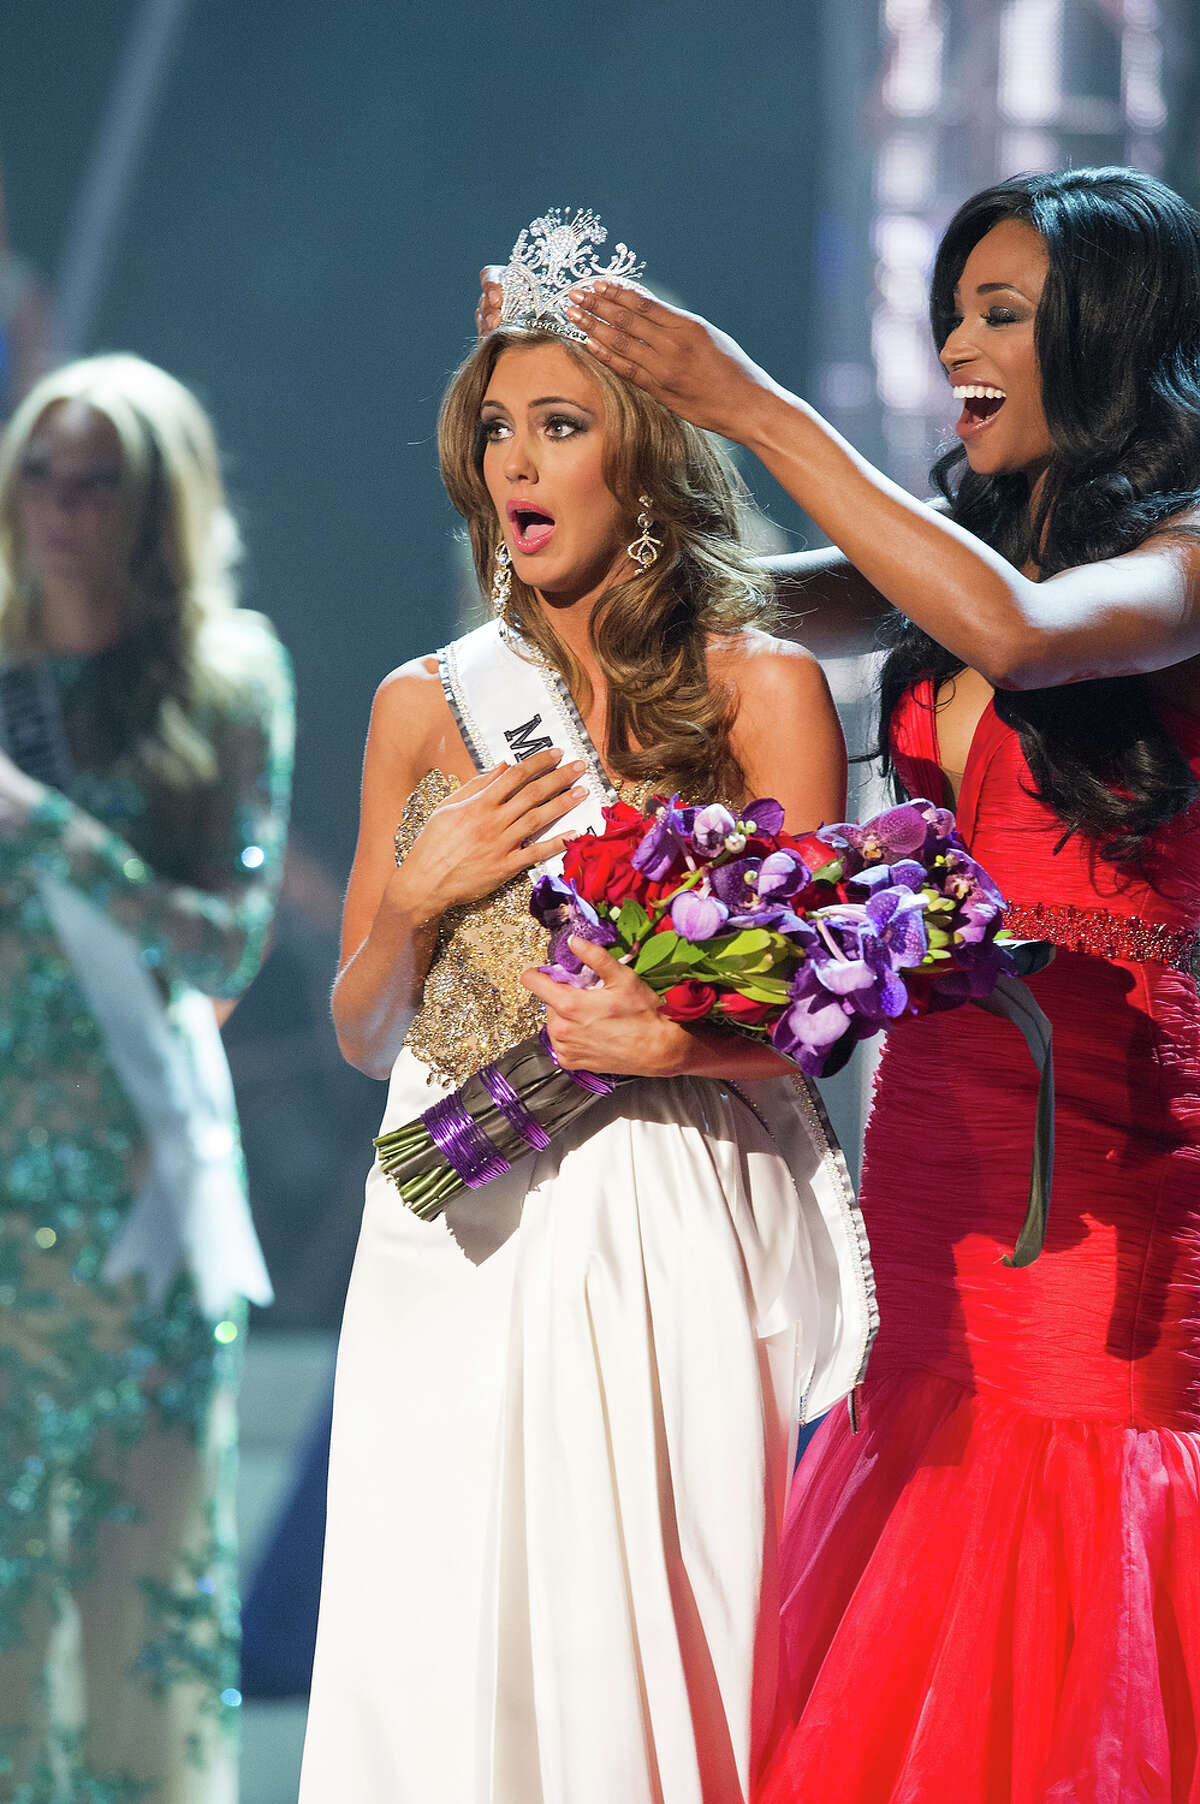 Miss Connecticut USA 2013, Erin Brady of East Hampton, is crowned Miss USA 2013 by Miss USA 2012, Nana Meriwether, at the conclusion of the 2013 MISS USA Competition at PH Live in Las Vegas, Nevada on Sunday June 16, 2013. She receives the coveted Miss USA Diamond Nexus Crown and will represent the USA at the 2013 MISS UNIVERSE Competition on November 9th from the Crocus City Hall in Moscow, Russia. HO/Miss Universe Organization L.P., LLLP.